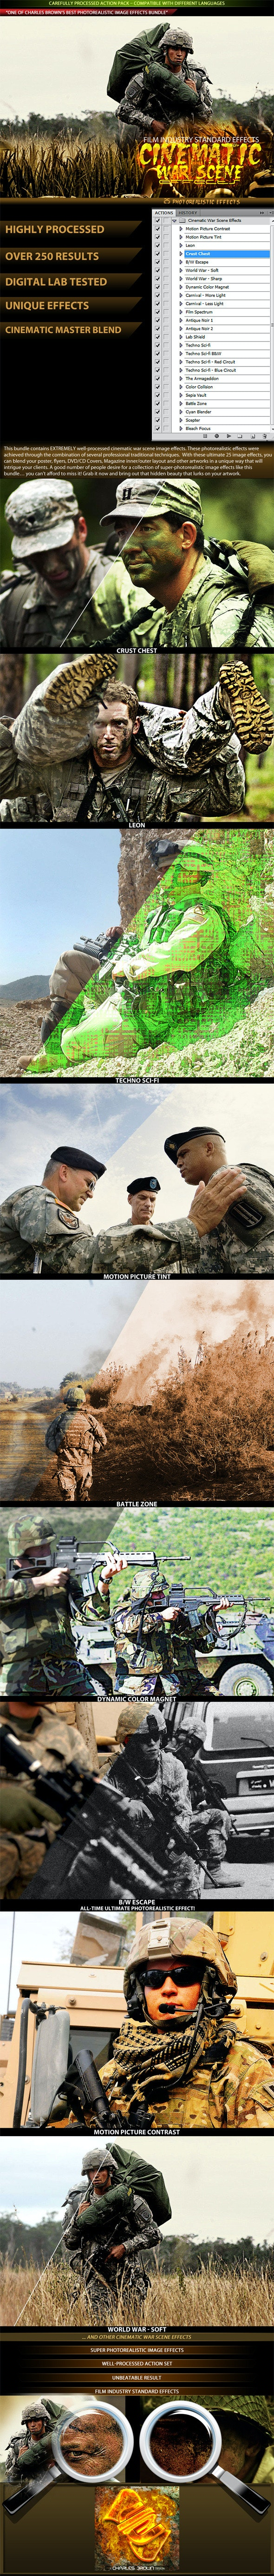 Cinematic War Scene Effects - Photo Effects Actions